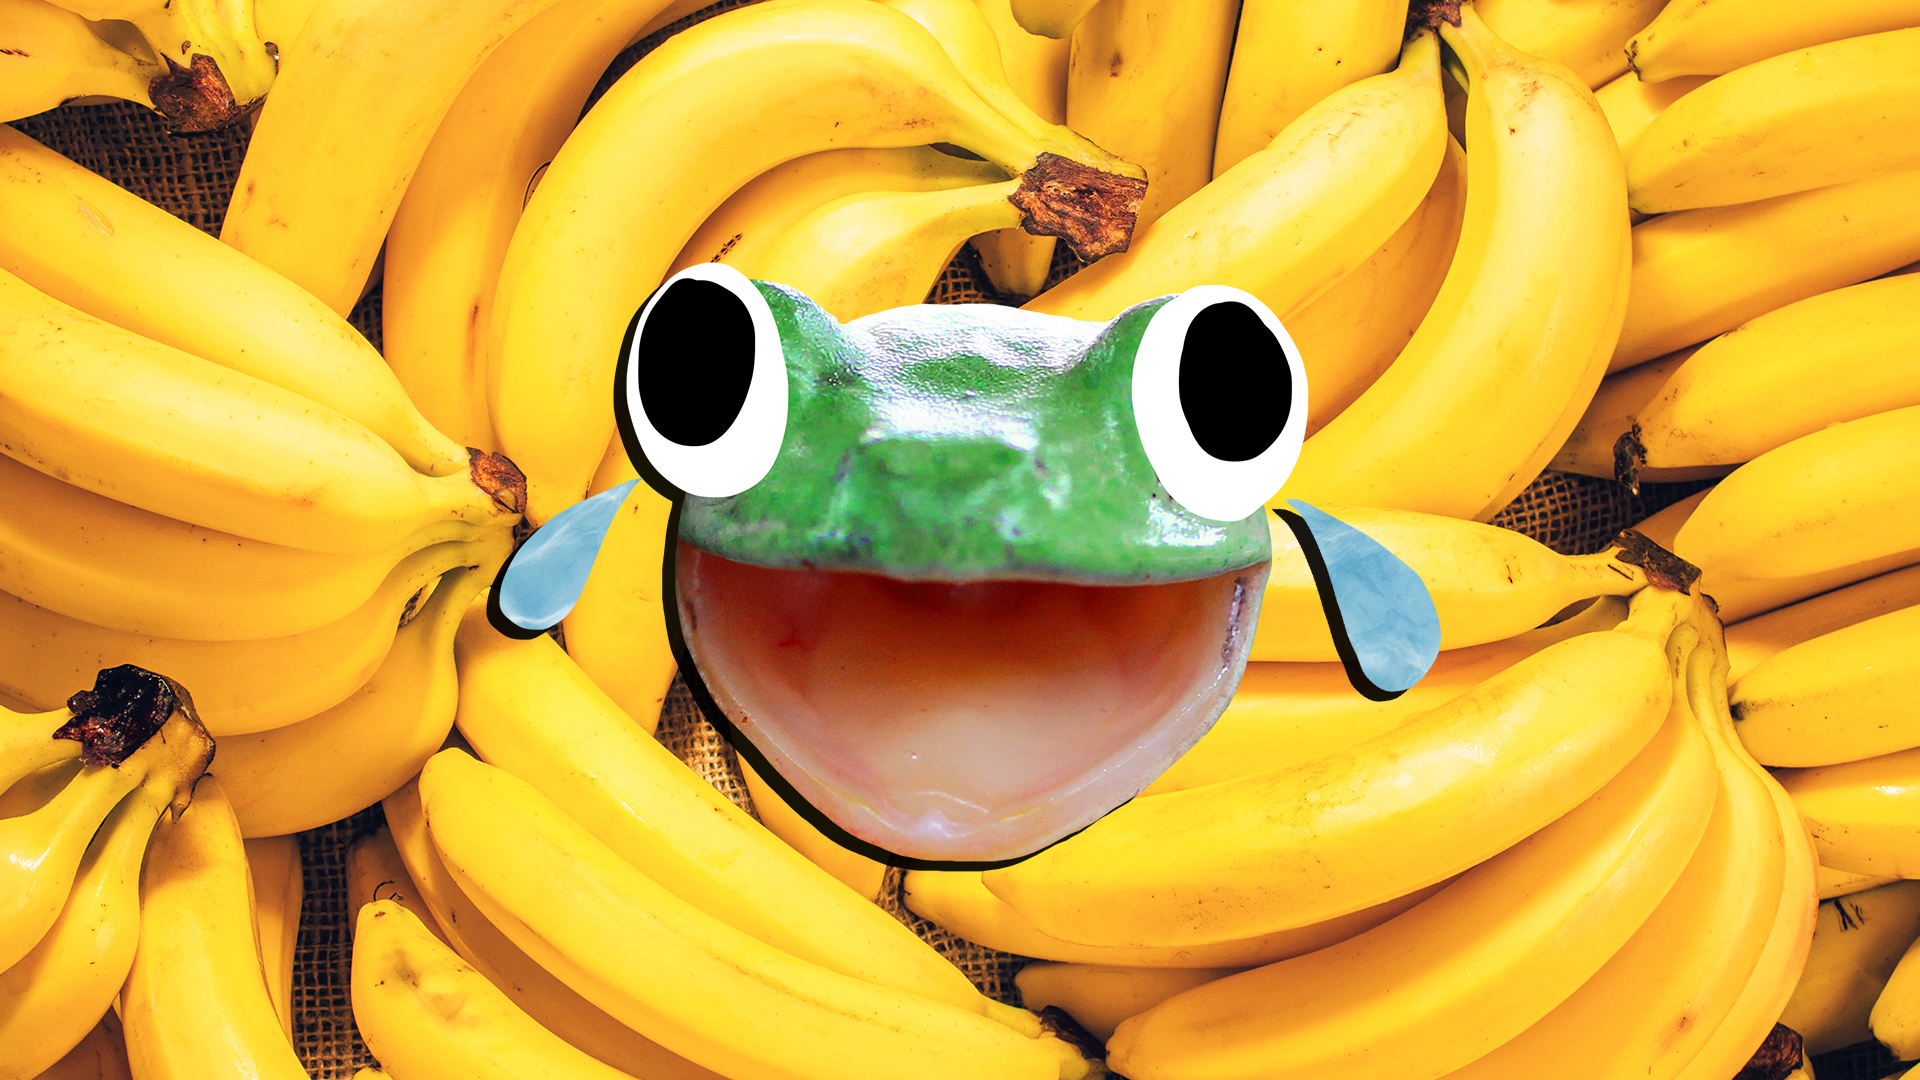 A laughing green frog